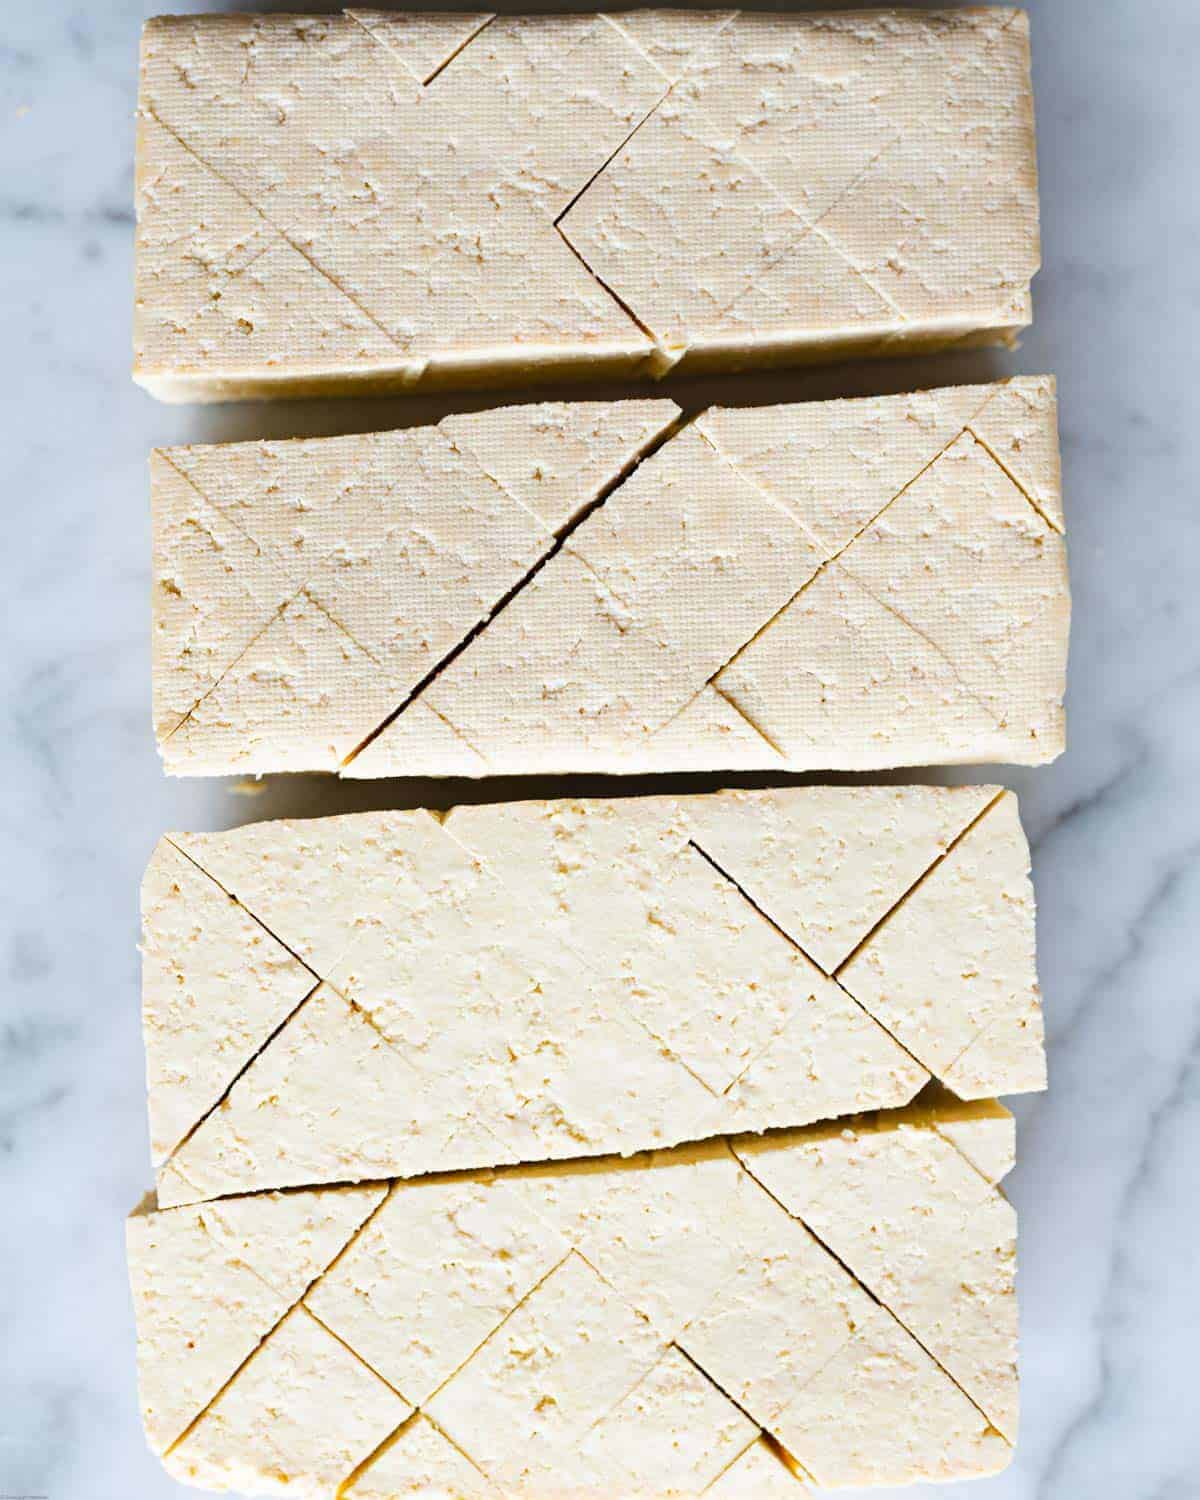 Extra firm tofu cut into 4 rectangles with a crosshatch pattern.